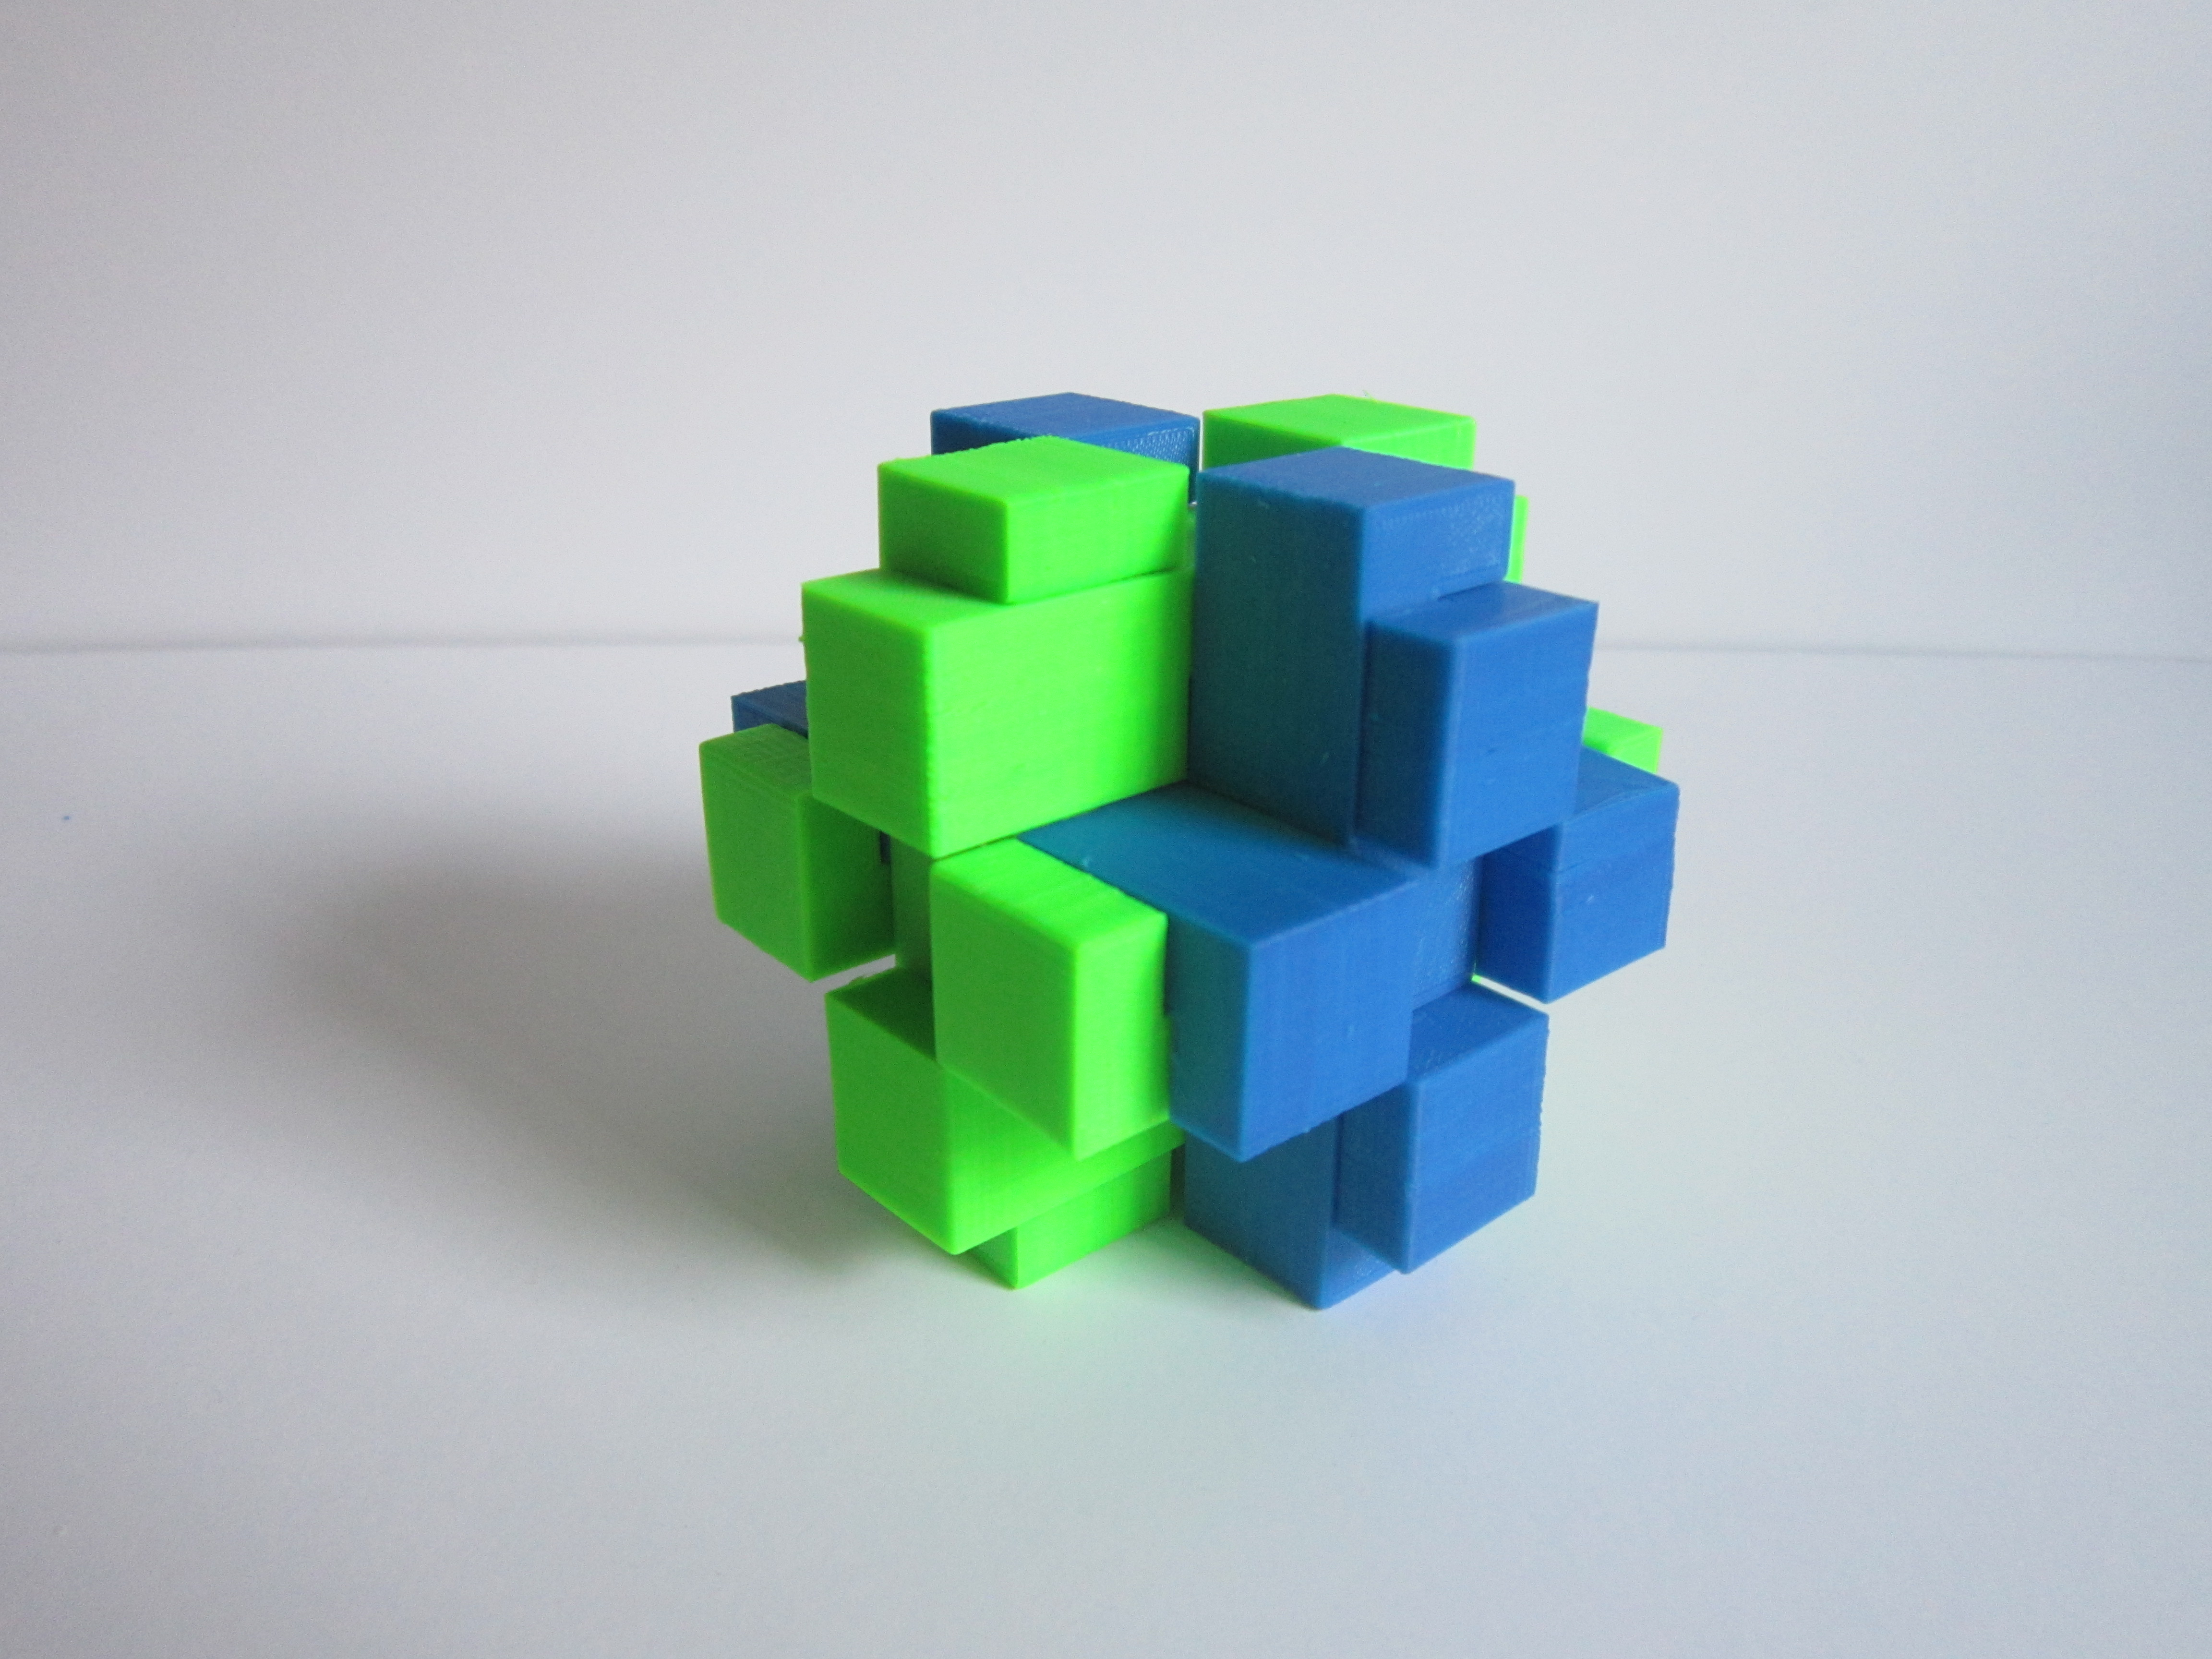 Picture of 3D Printed Brain Teaser Puzzle